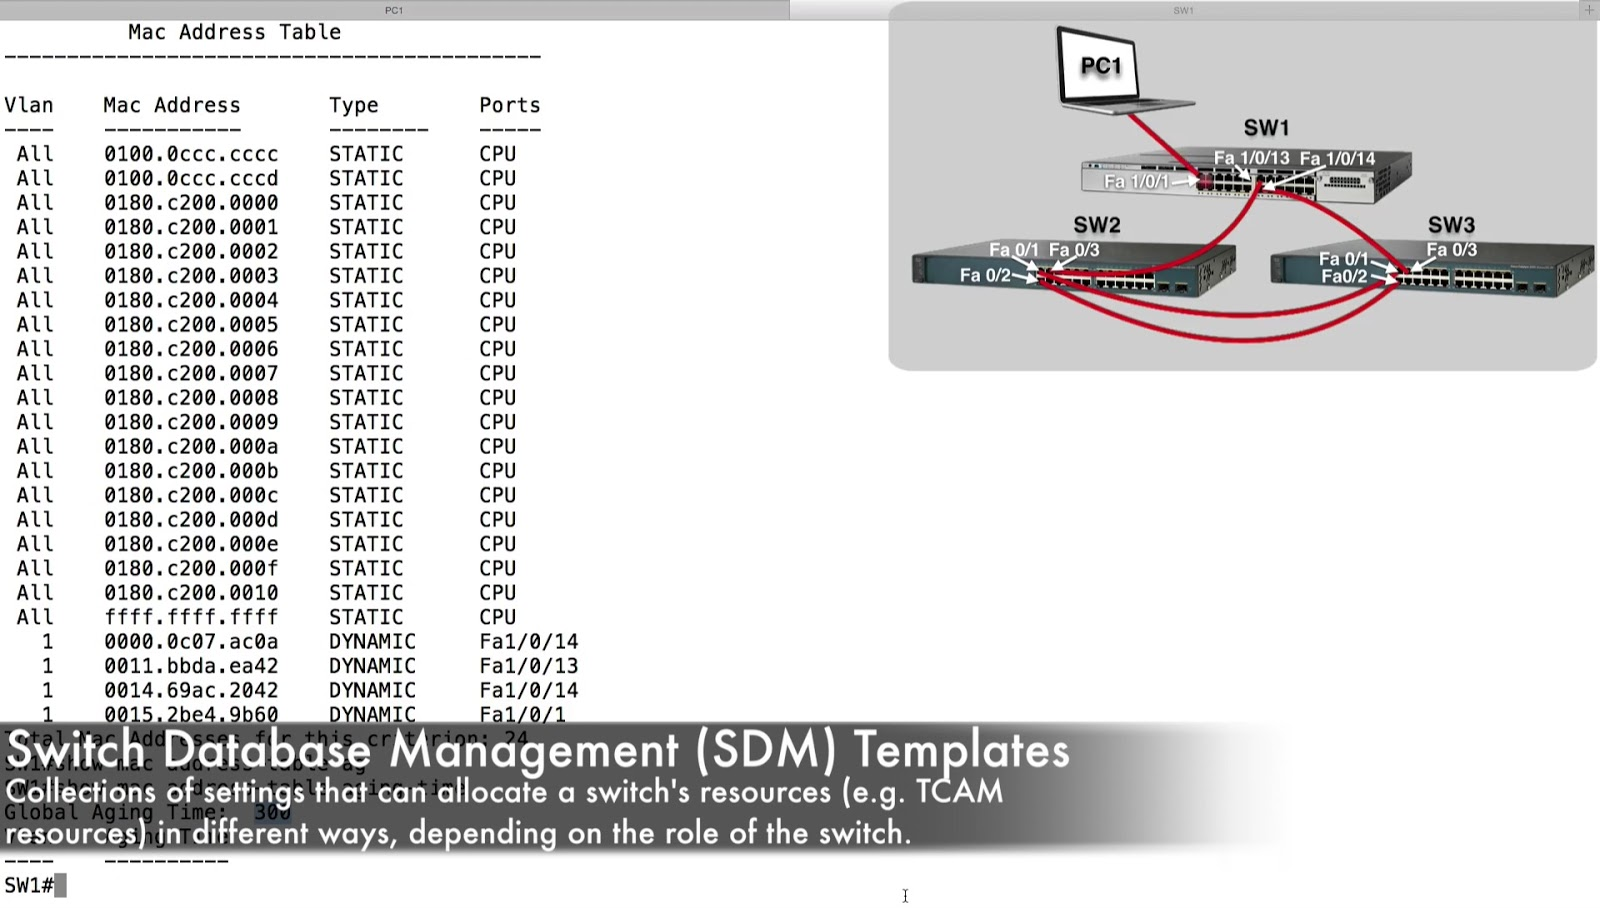 Investigating the MAC Address Table and SDM Templates | Best Cisco ...